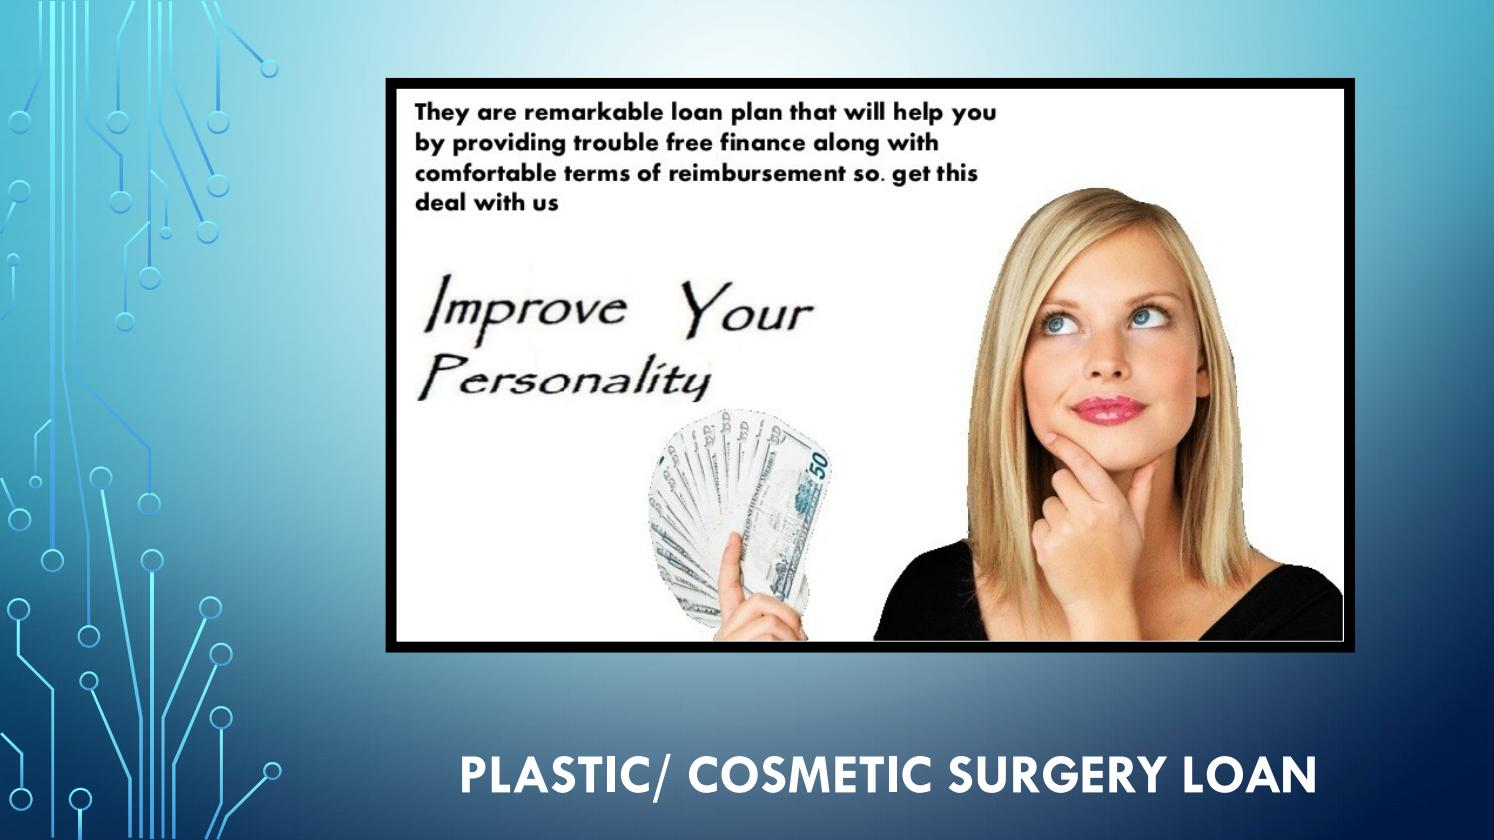 Plastic/ Cosmetic Surgery Loans - TLC by Total Lifestyle